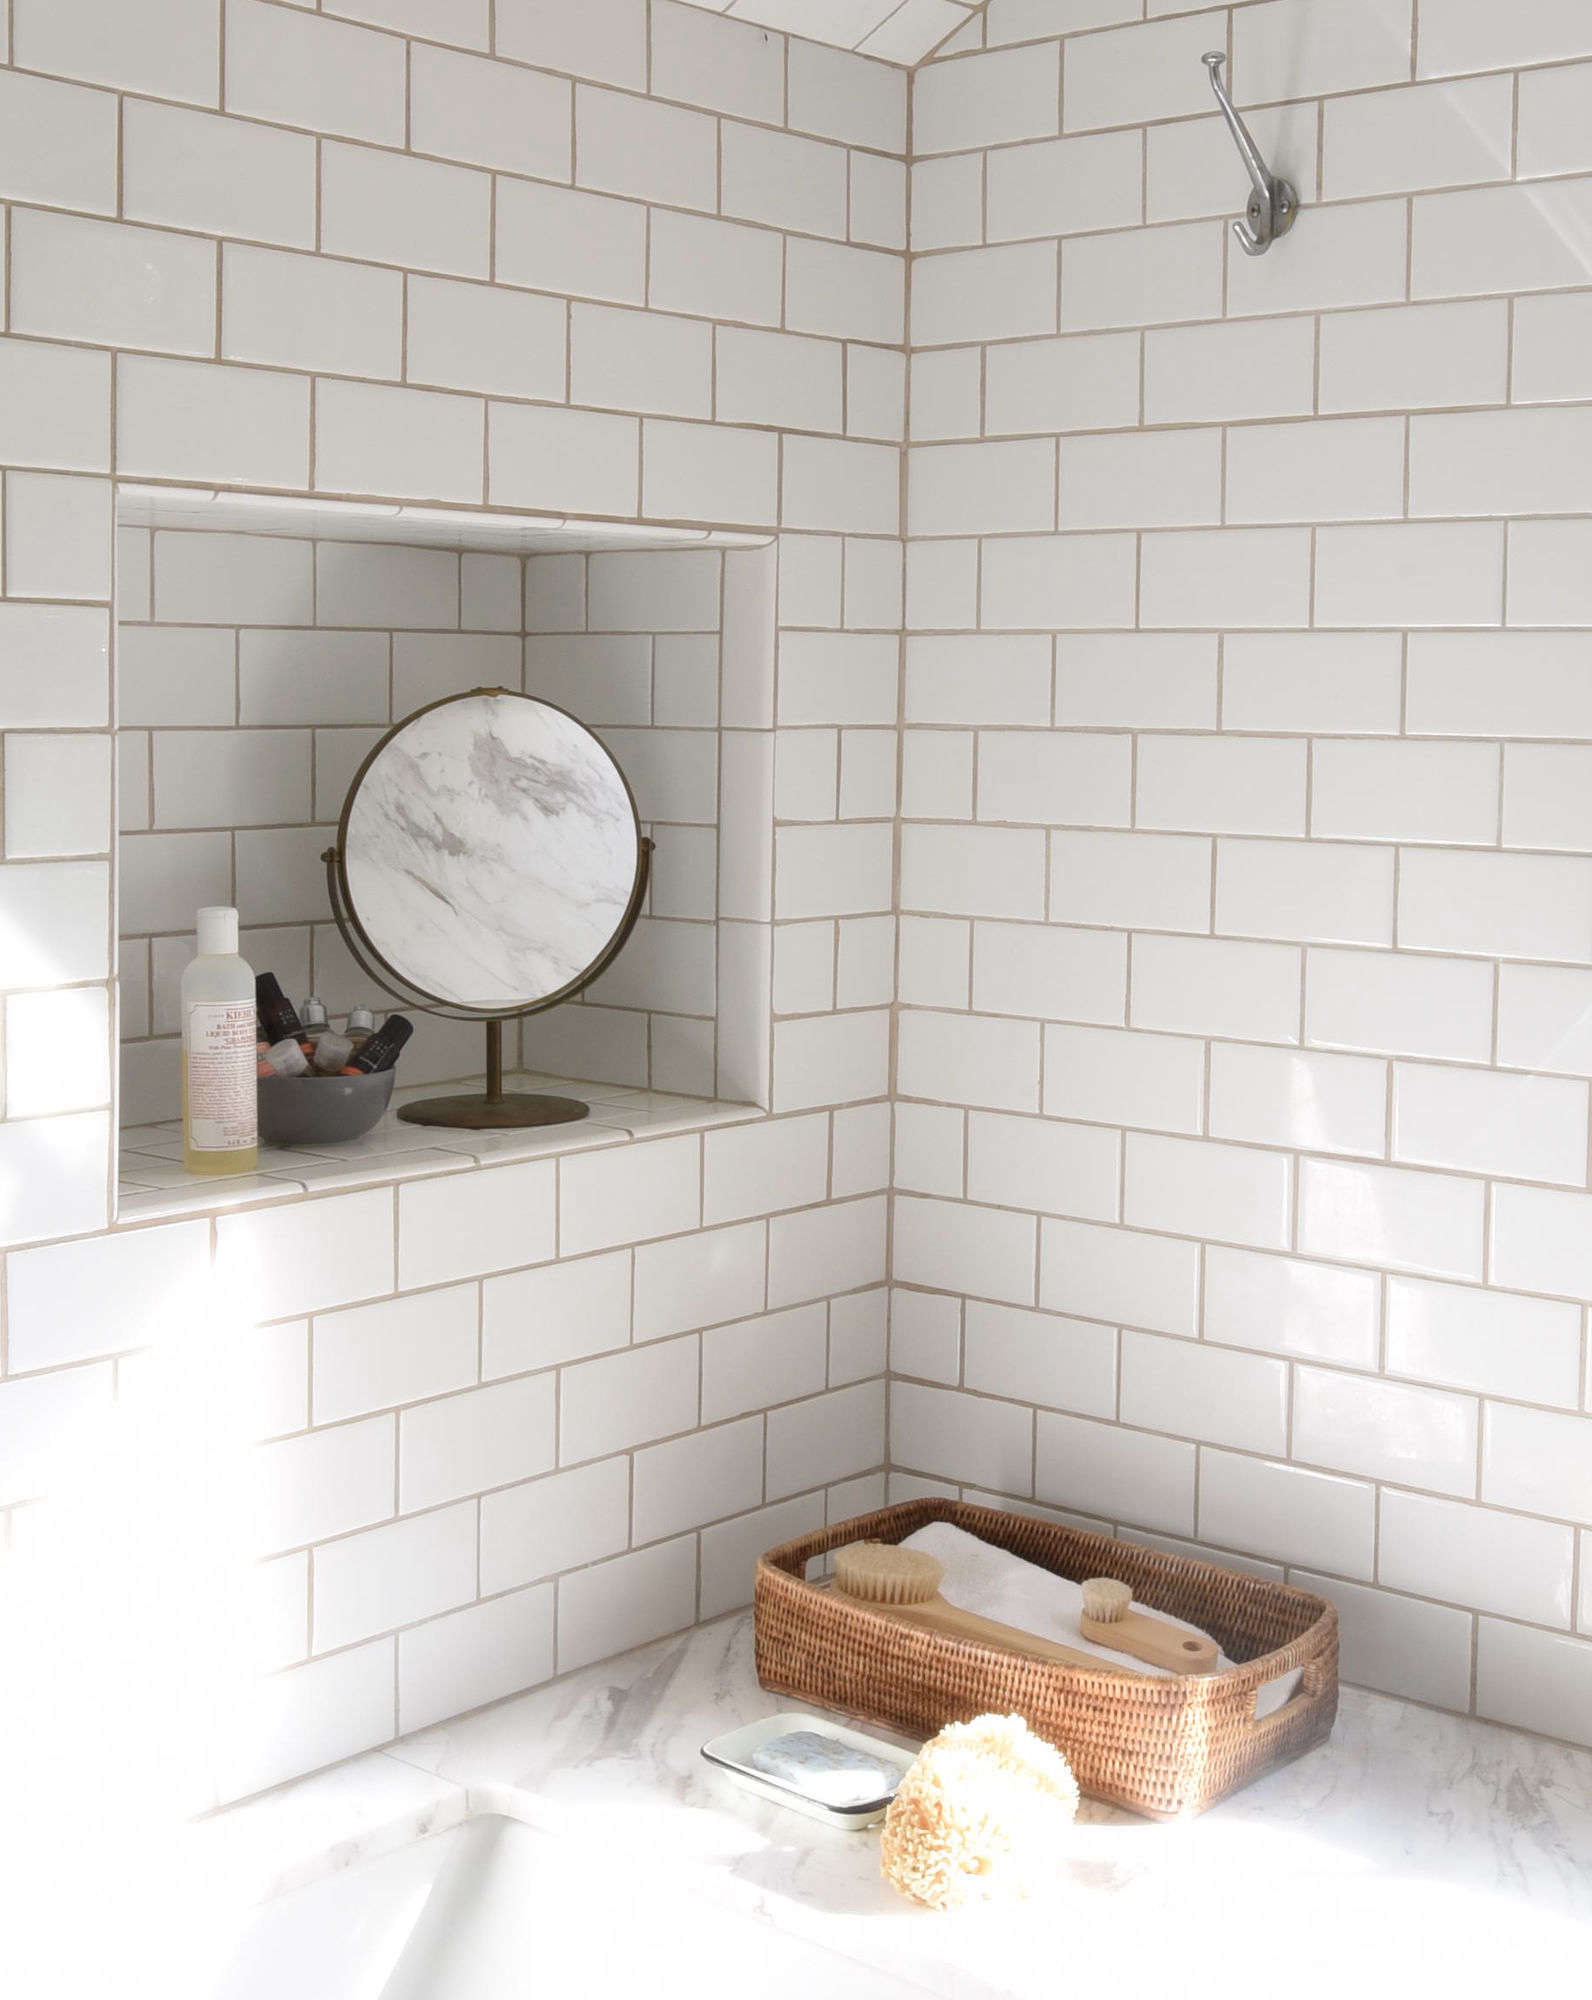 A recessed tile niche holdstoiletries and a fiber basket keeps scrub brushes and spare washclothshandy.